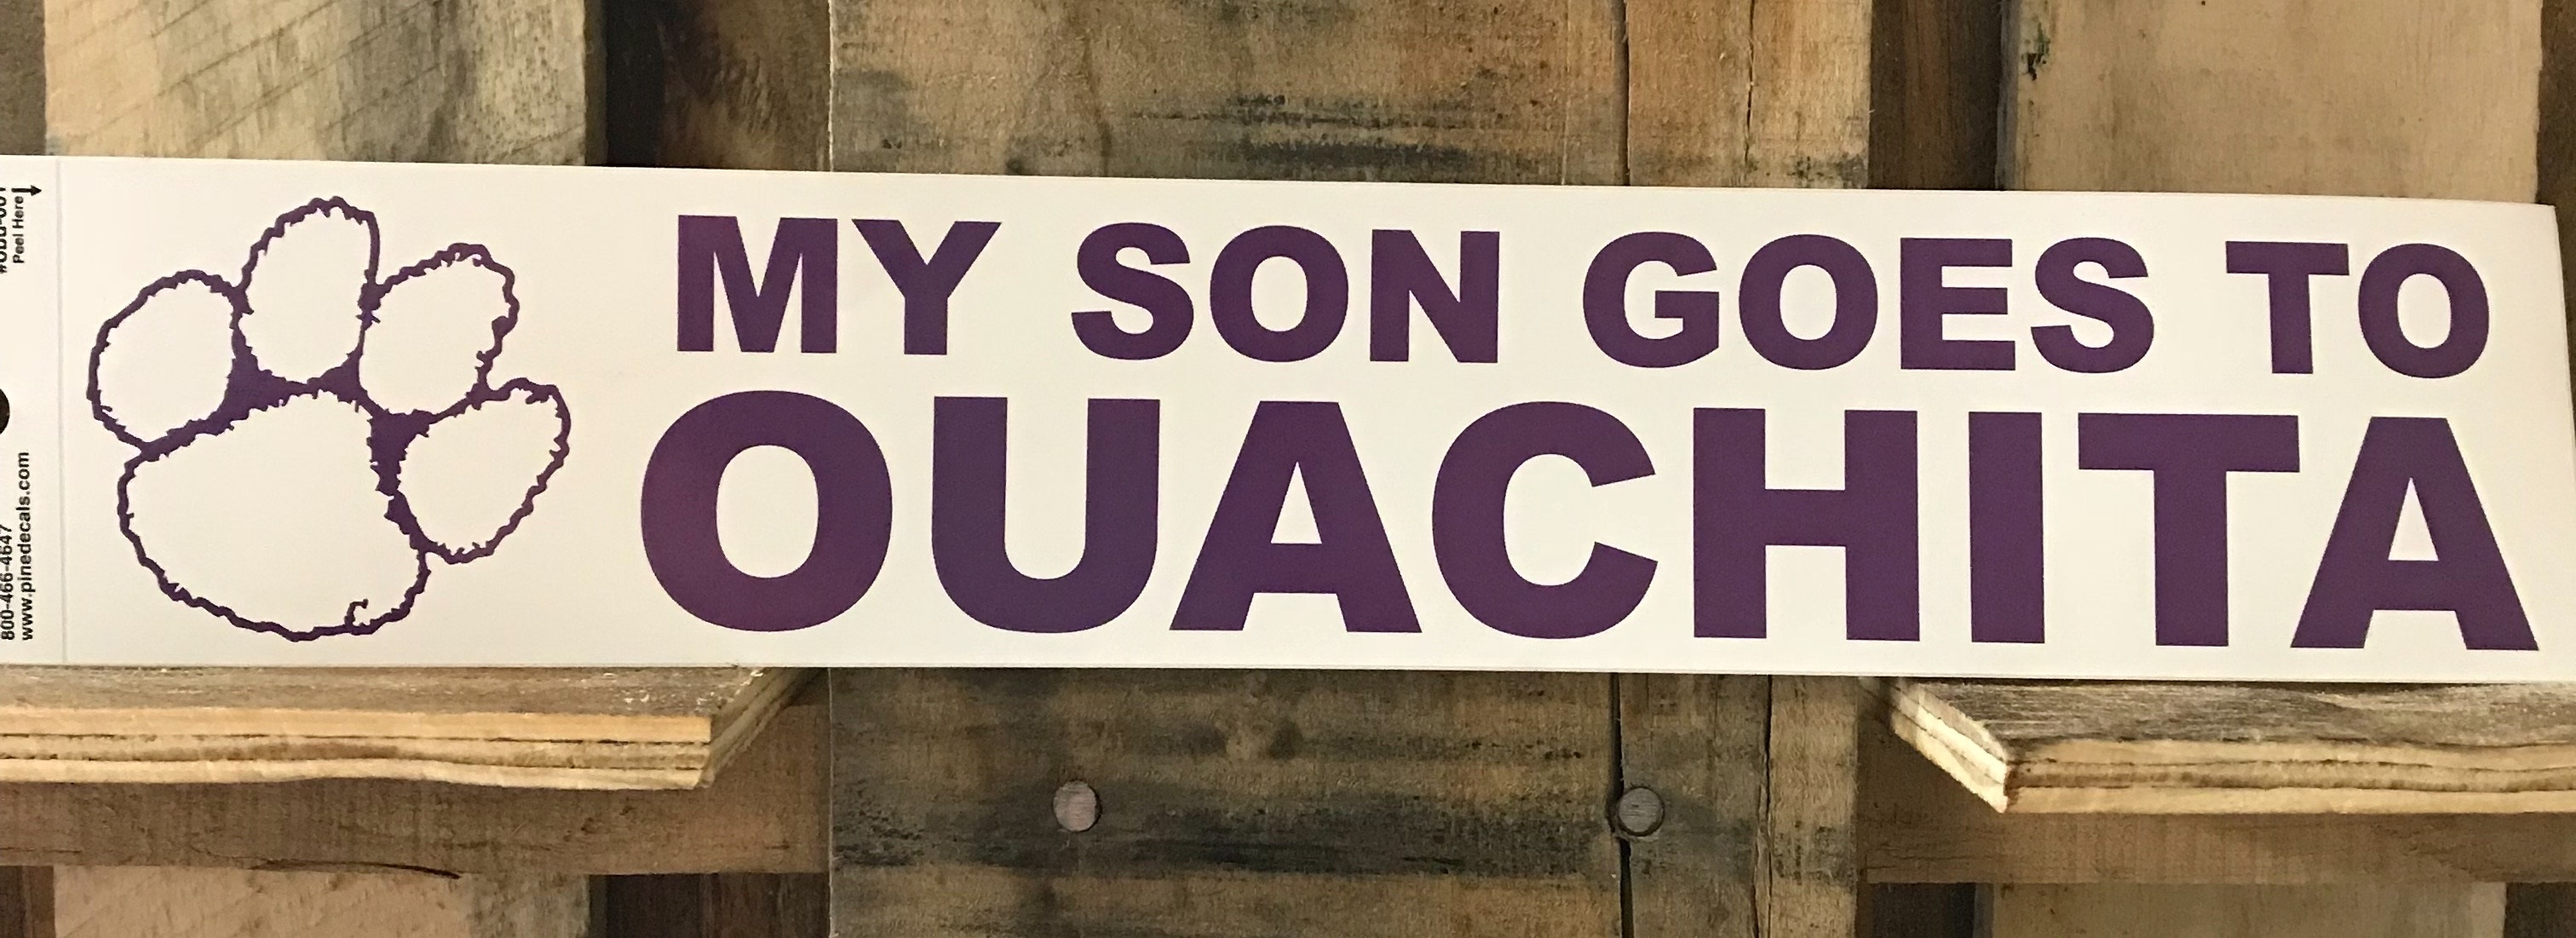 BUMPER STICKER- MY SON GOES TO OUACHITA